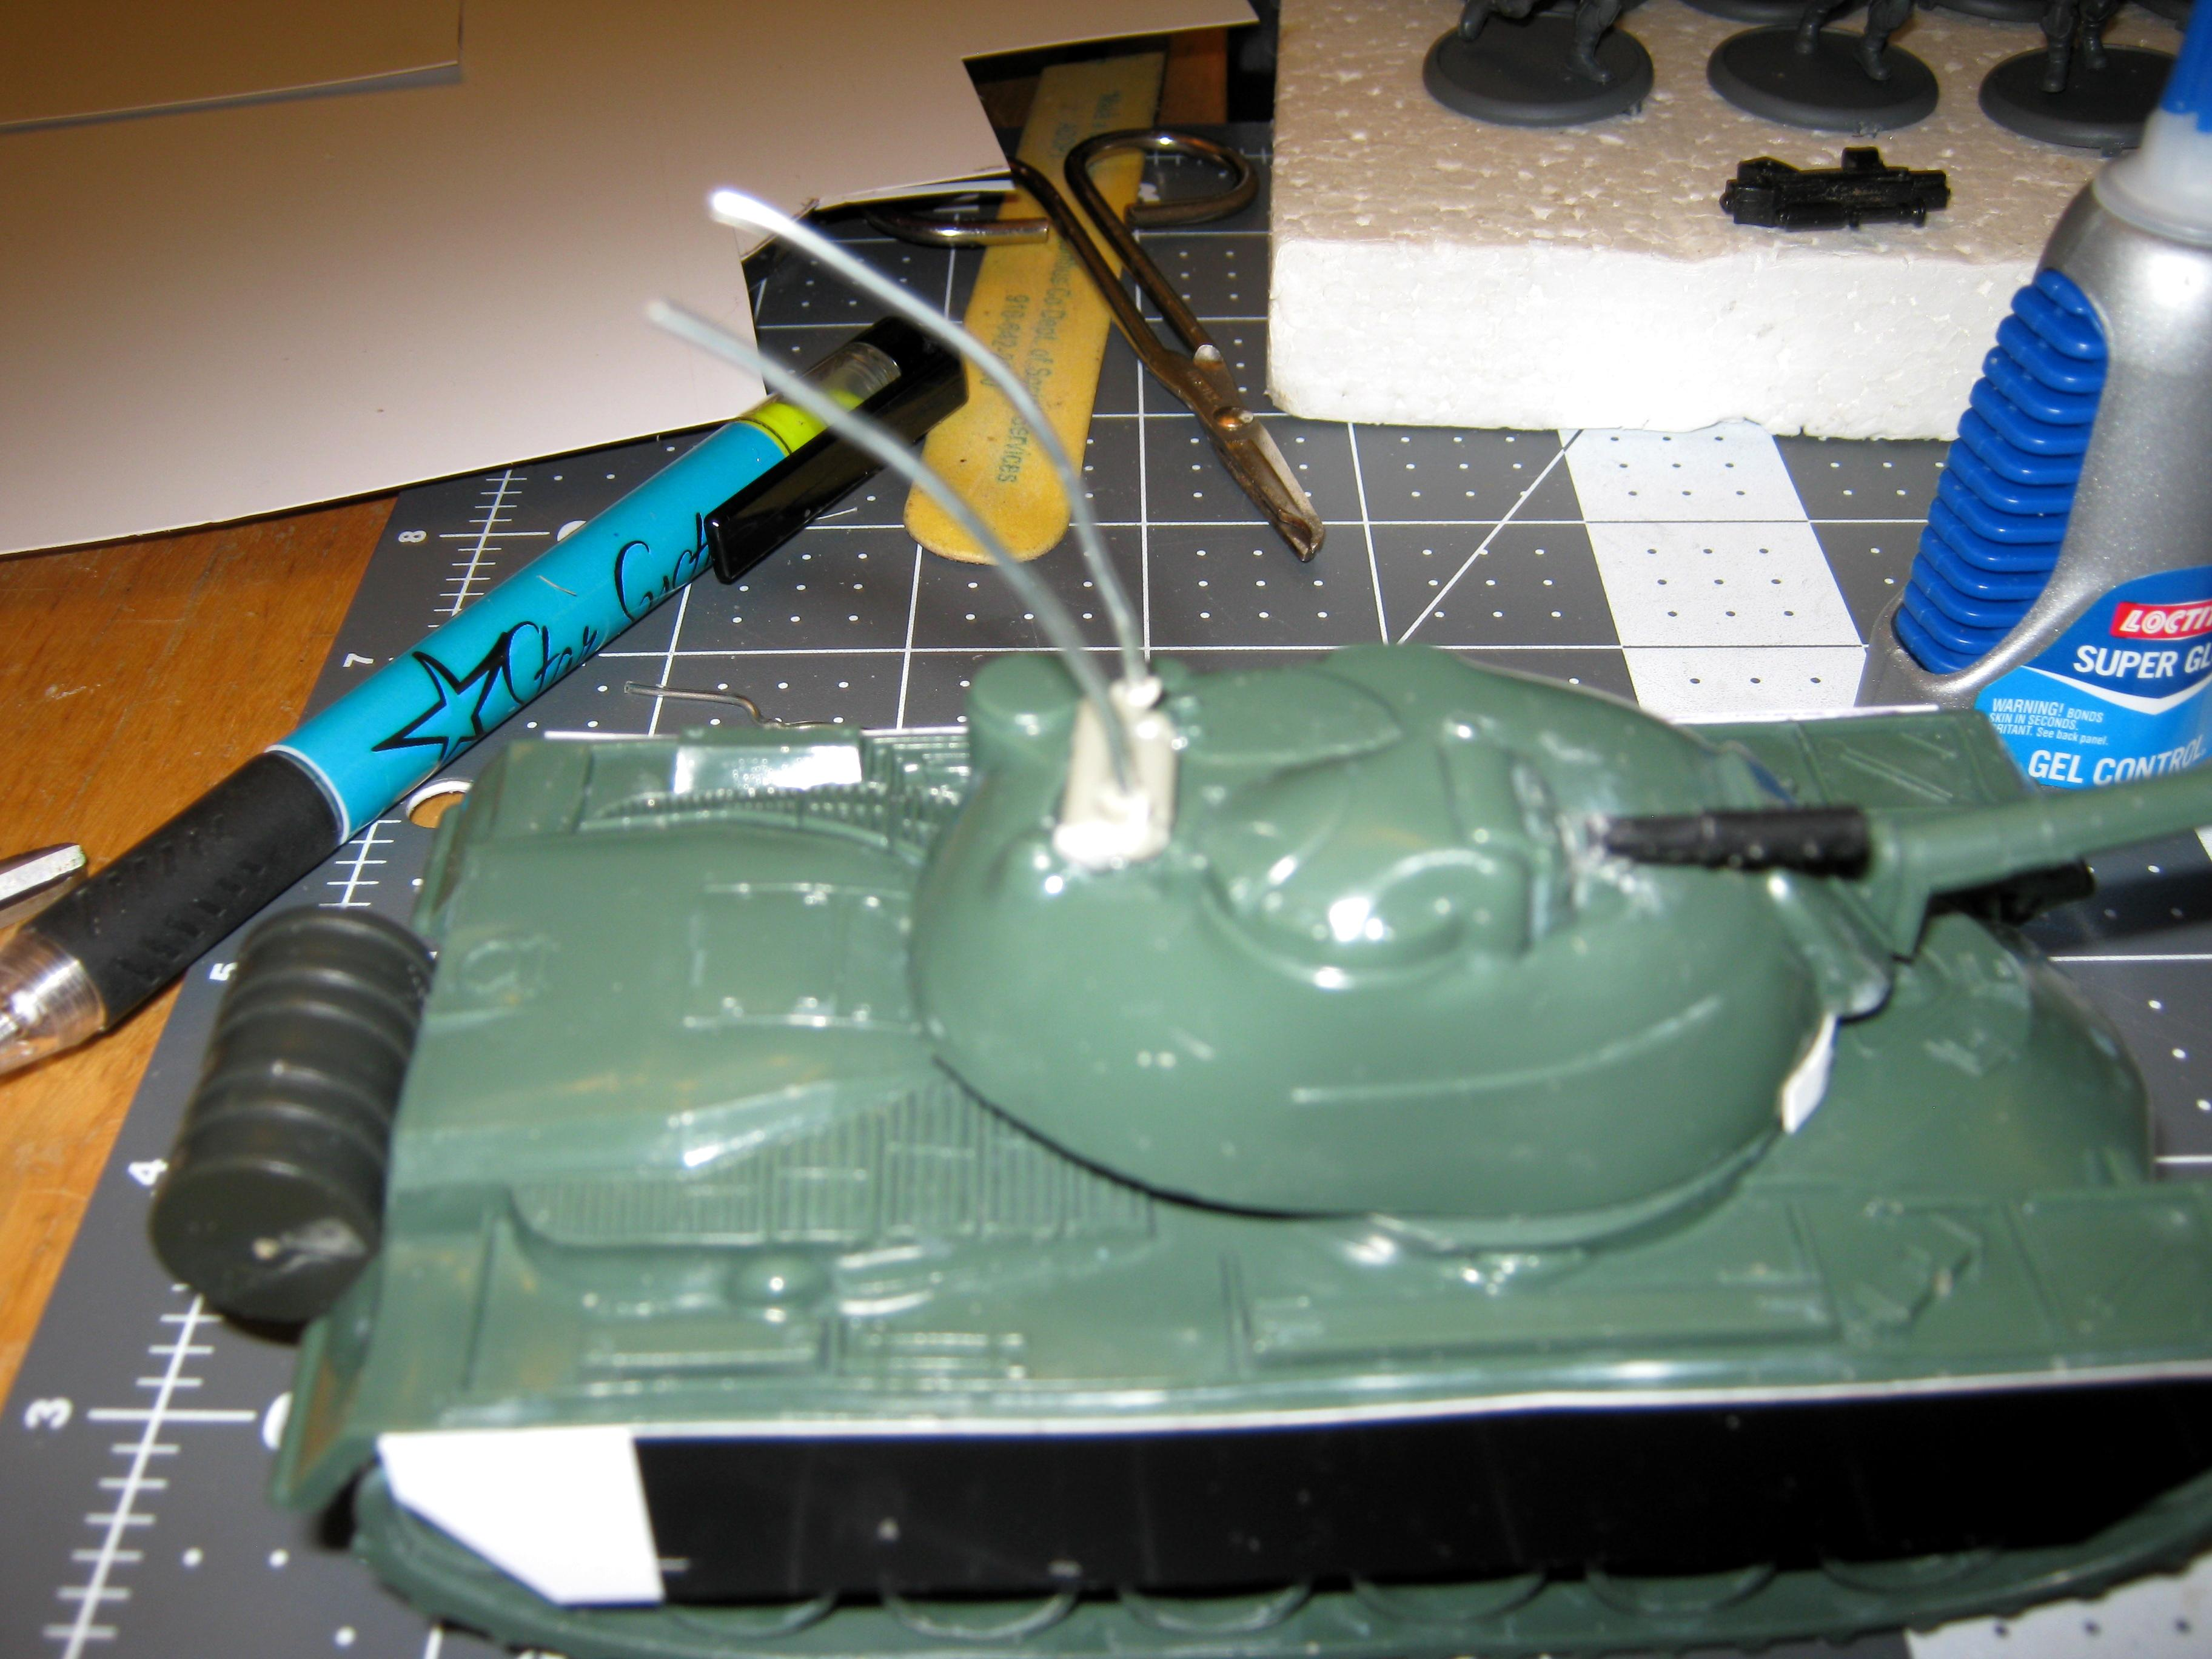 Imperial, Light Tank, M47, M48, Recon Vehicle, Scouts, Tank, Timmee Toys, Toy